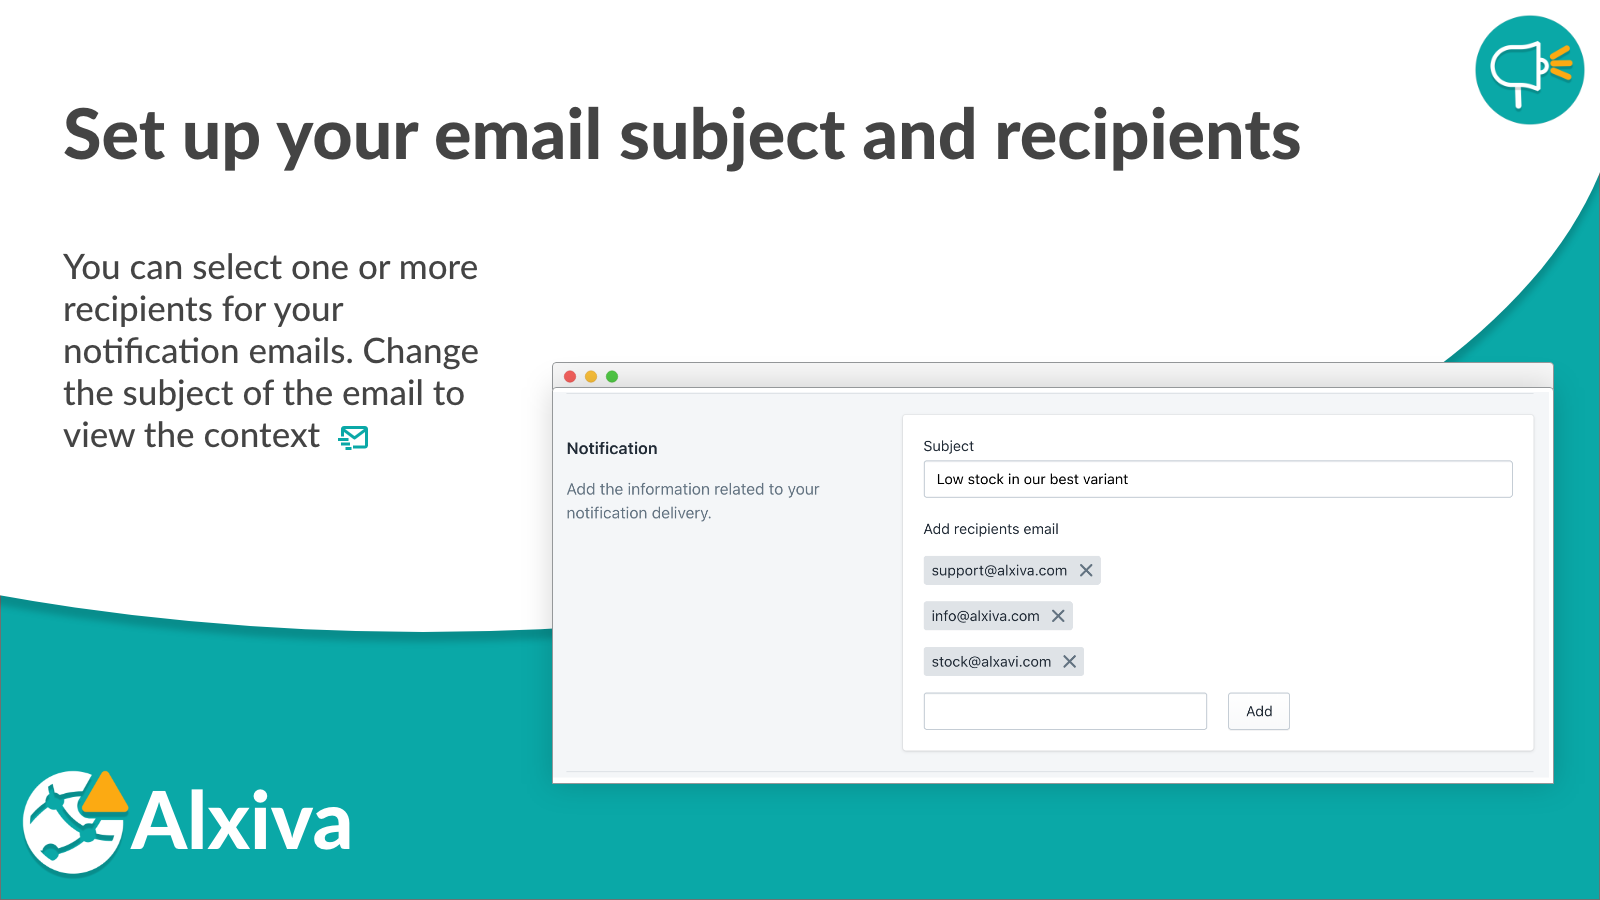 Set up email subject and recipients